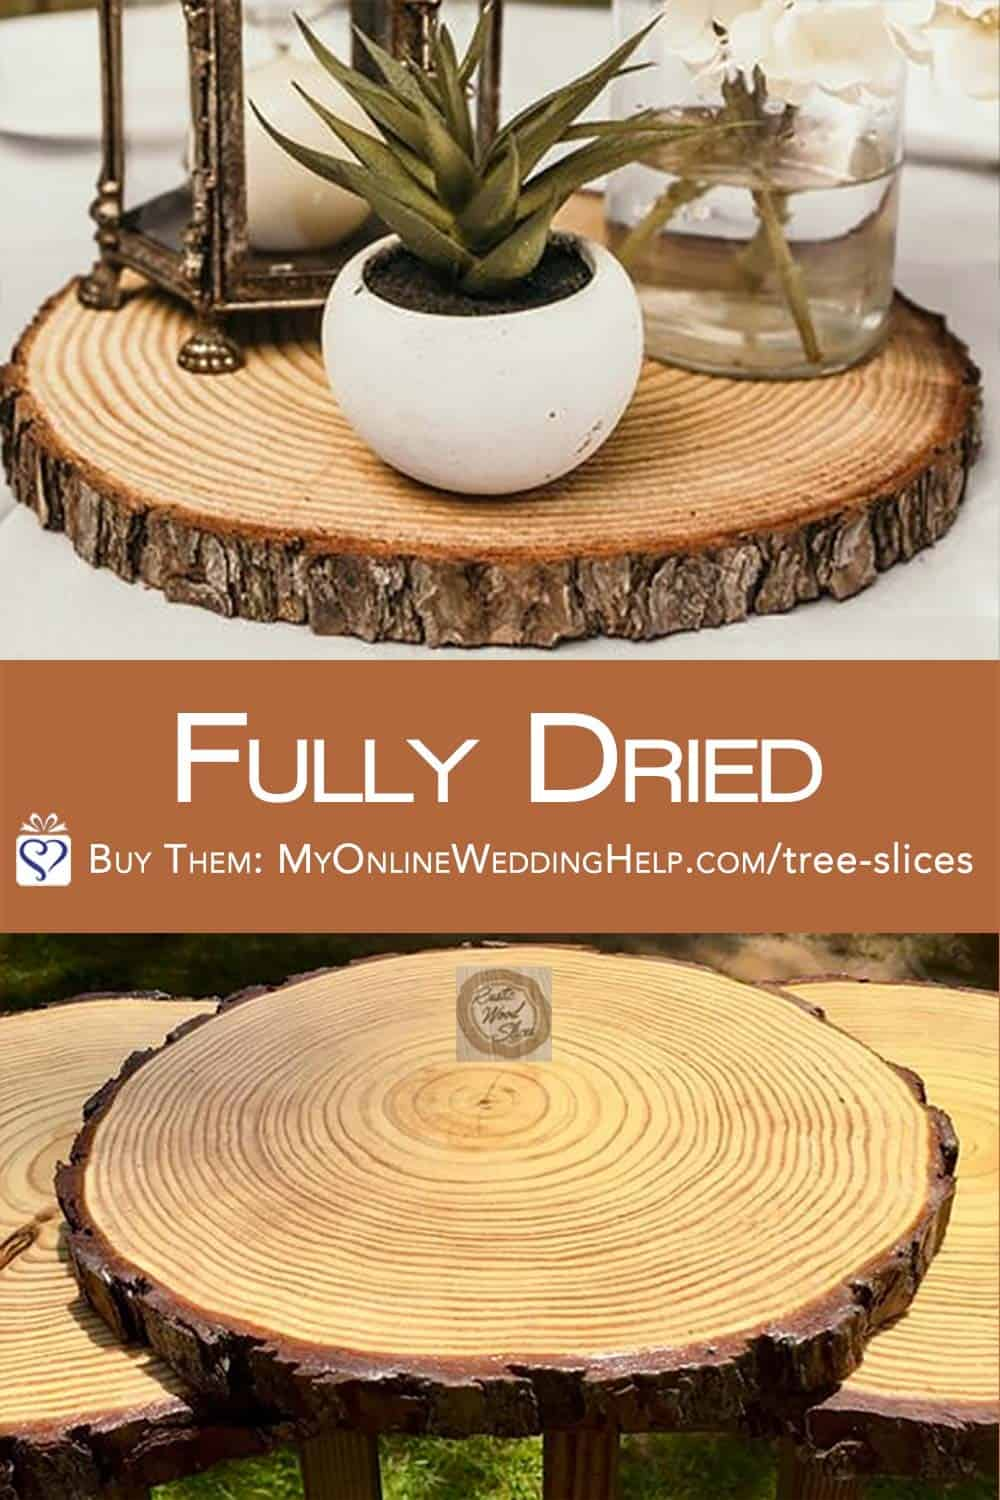 These wood slices are full dried so you can confidently use them in your rustic wedding decor. Like as wedding centerpiece bases. Learn more or buy n the My Online Wedding Help products section.